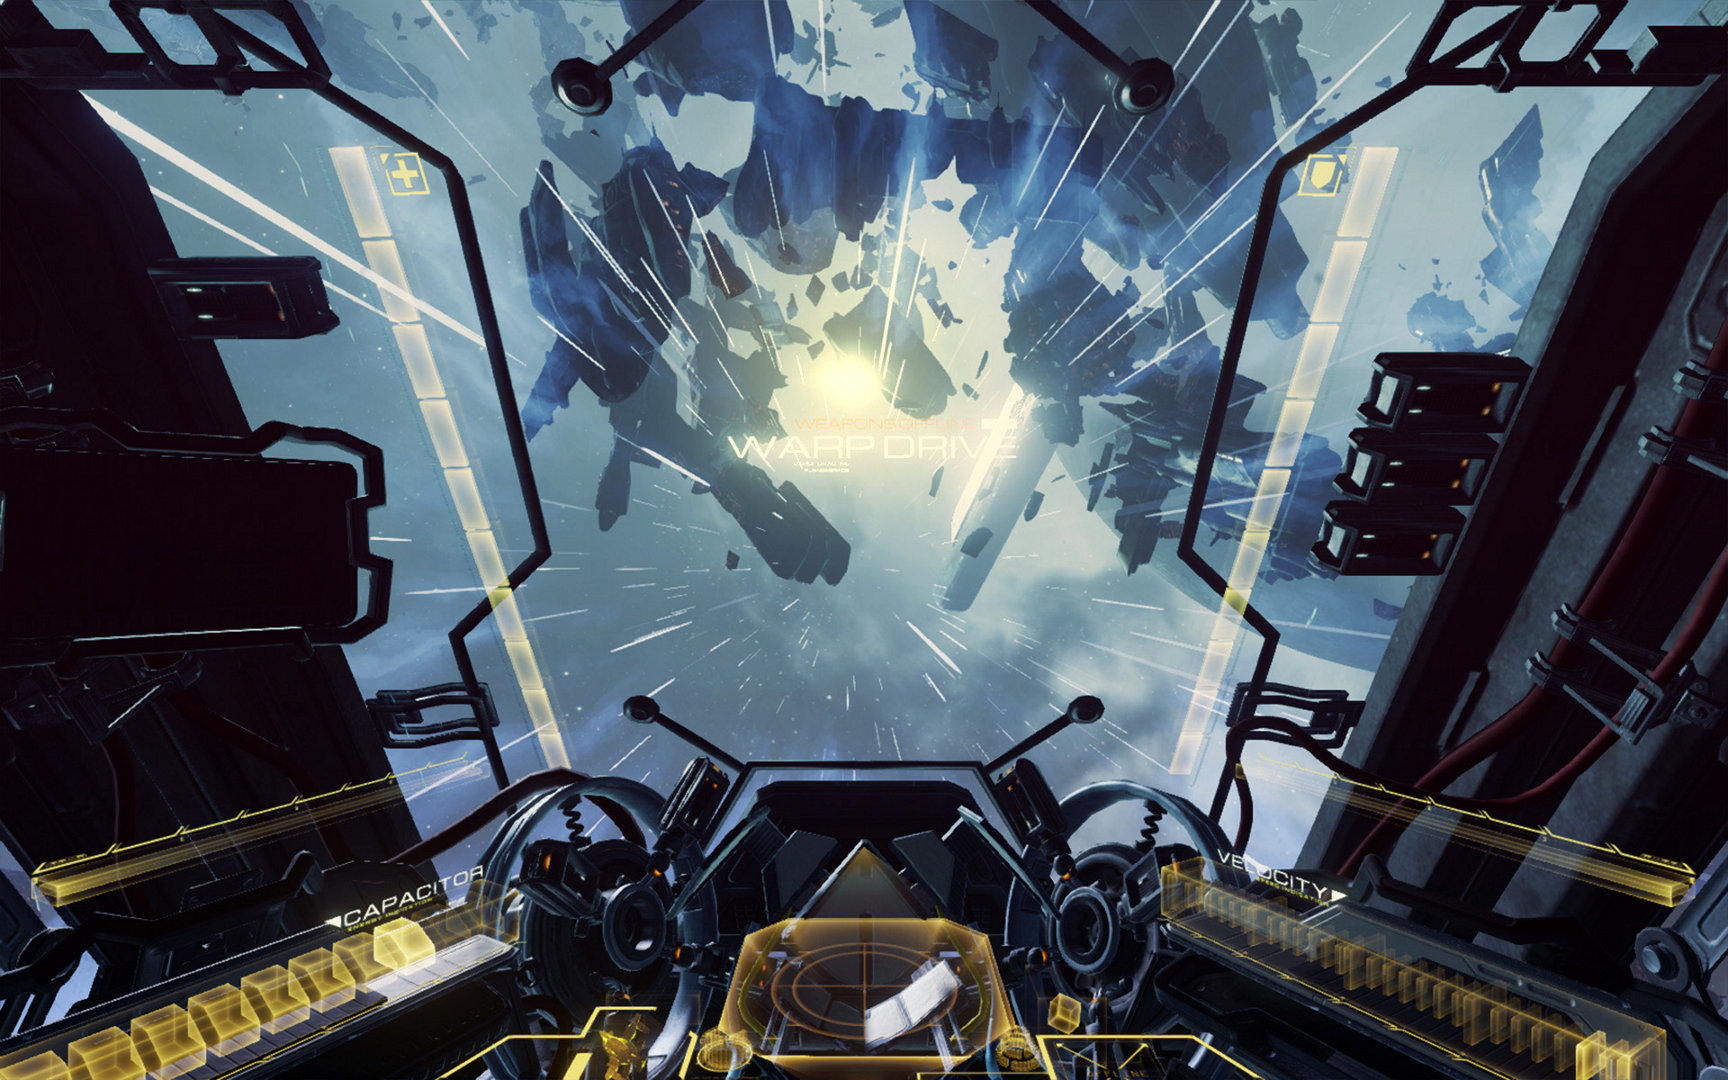 eve-valkyrie-screen-05-ps4-eu-09nov15